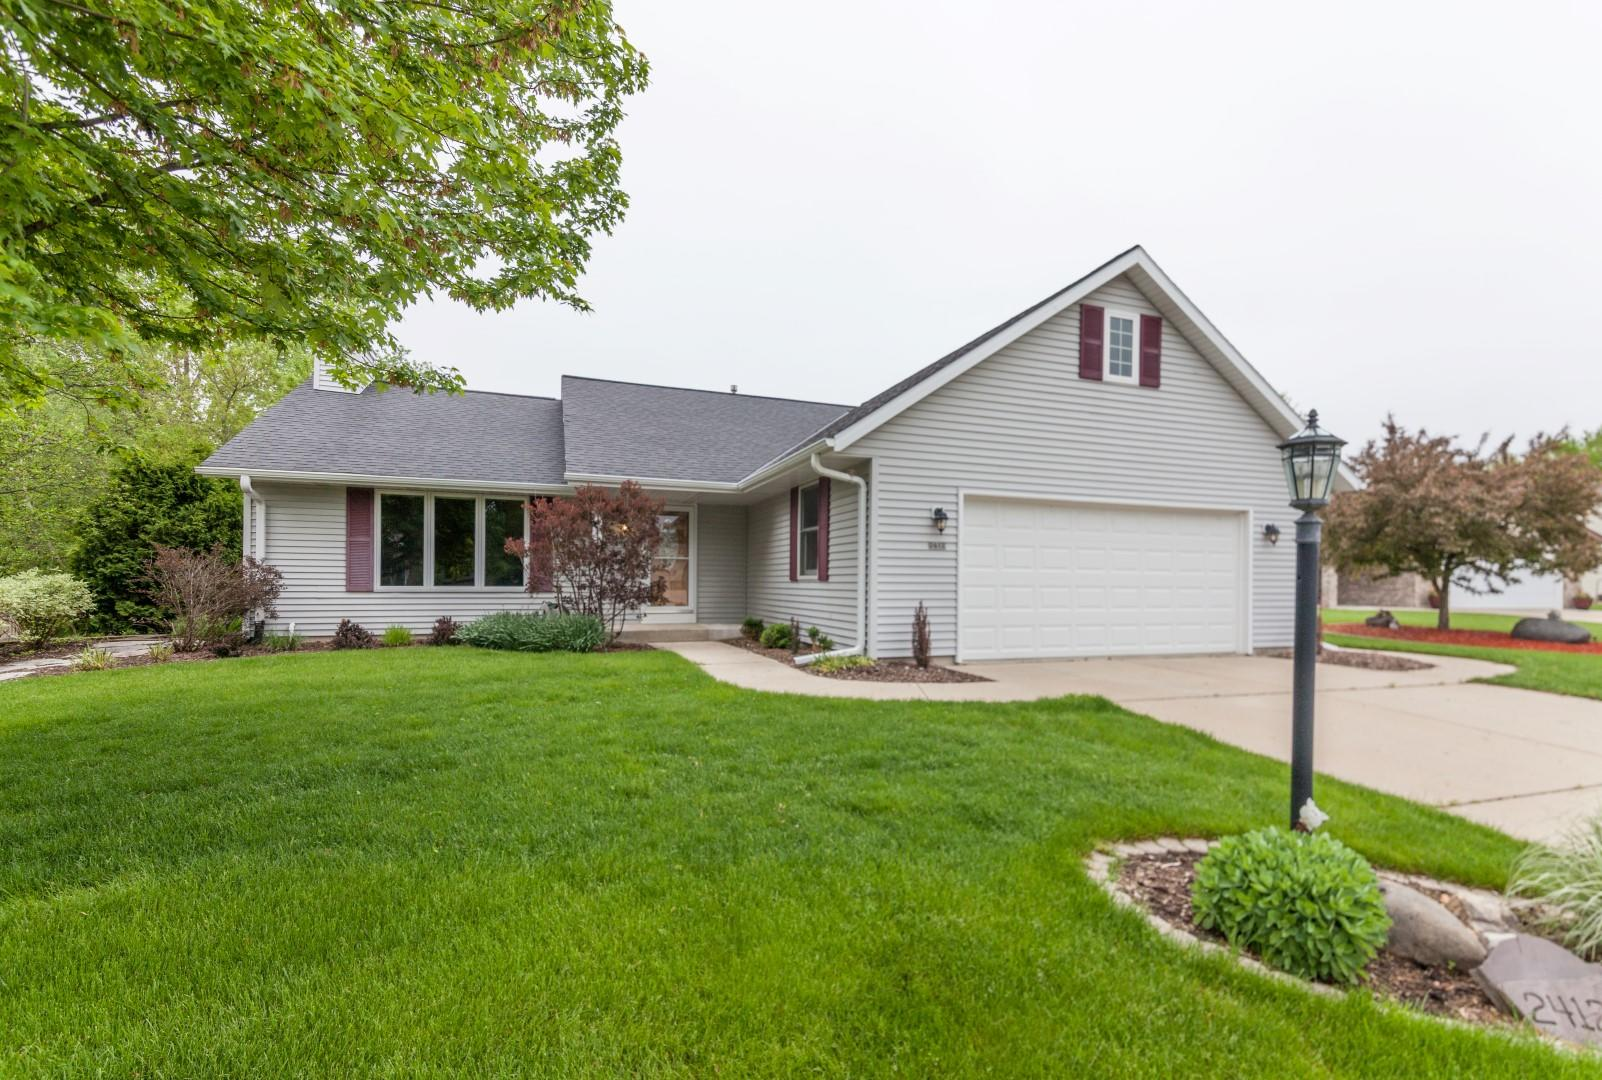 2412 Tanager Ct, Waukesha, Wisconsin 53189, 3 Bedrooms Bedrooms, ,3 BathroomsBathrooms,Single-Family,For Sale,Tanager Ct,1639419